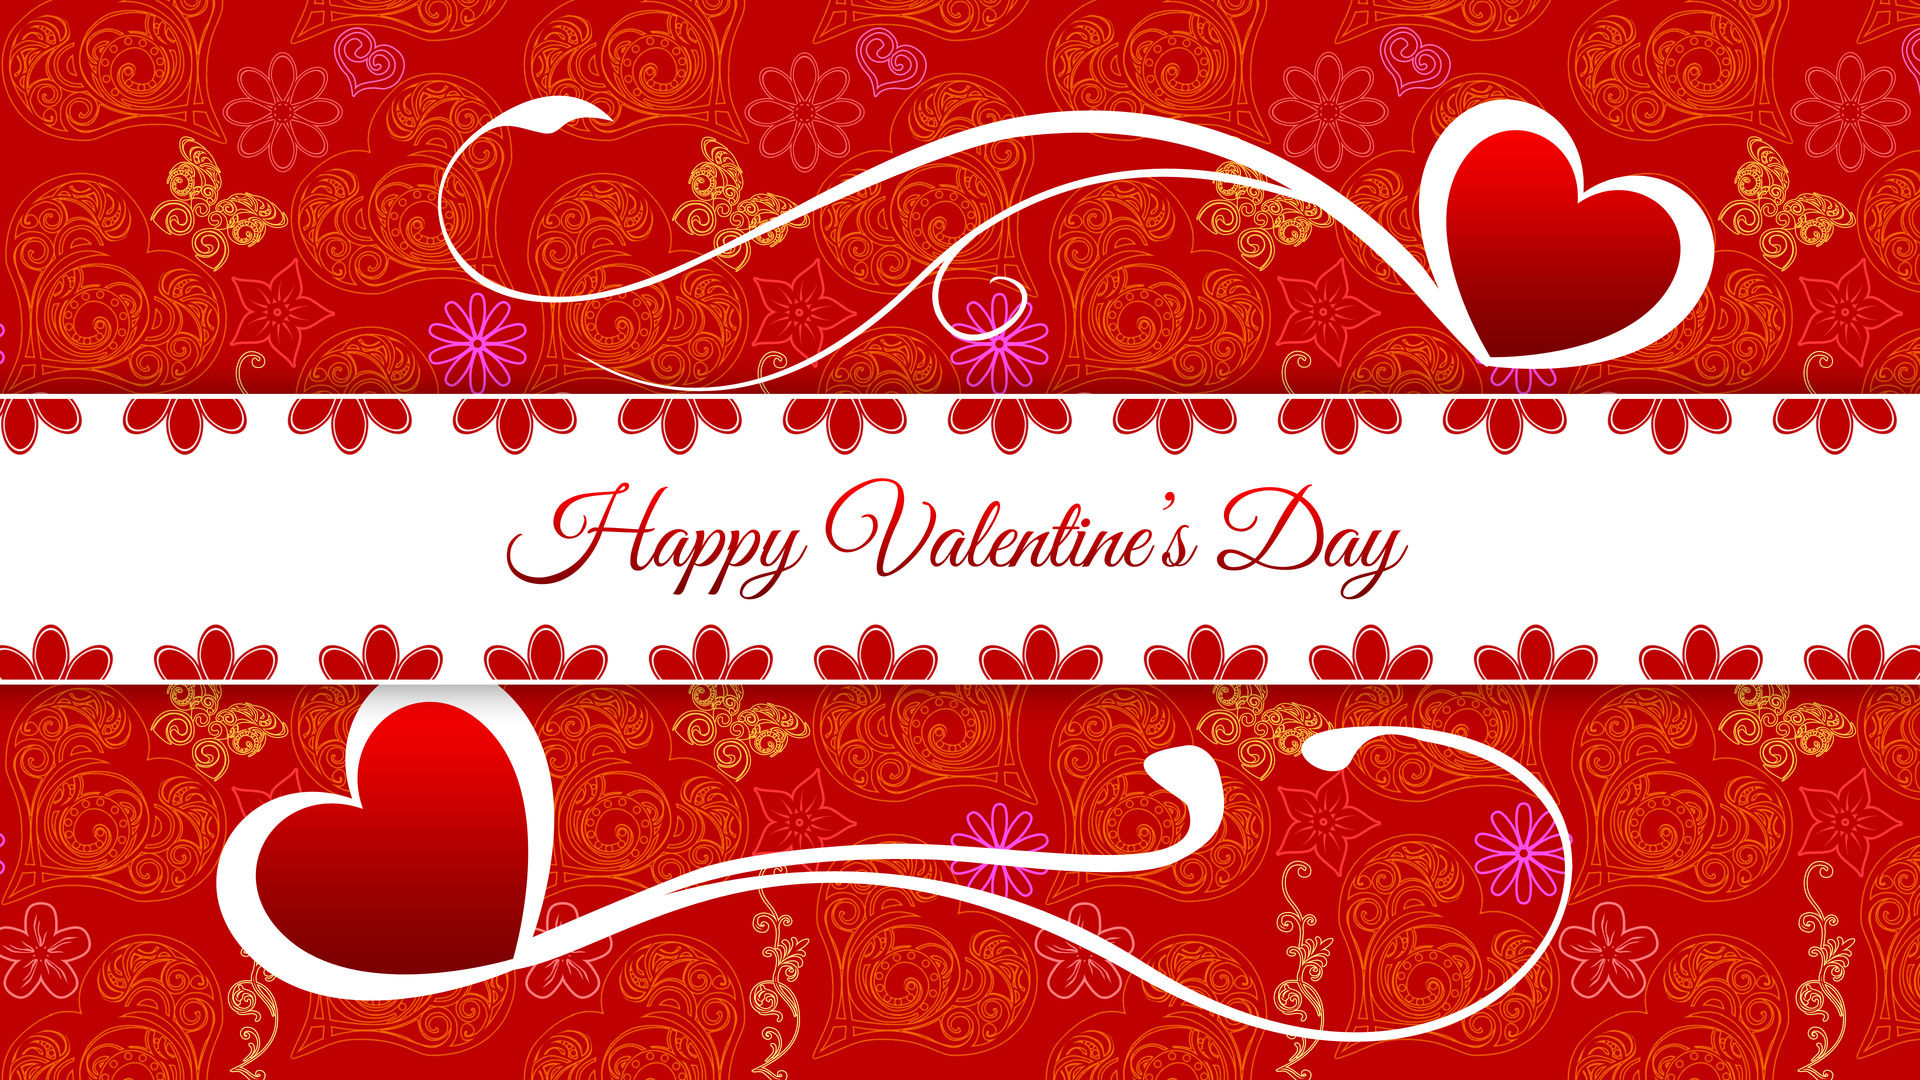 Greeting Card Graphic Valentines Day Pictures Photos And Images